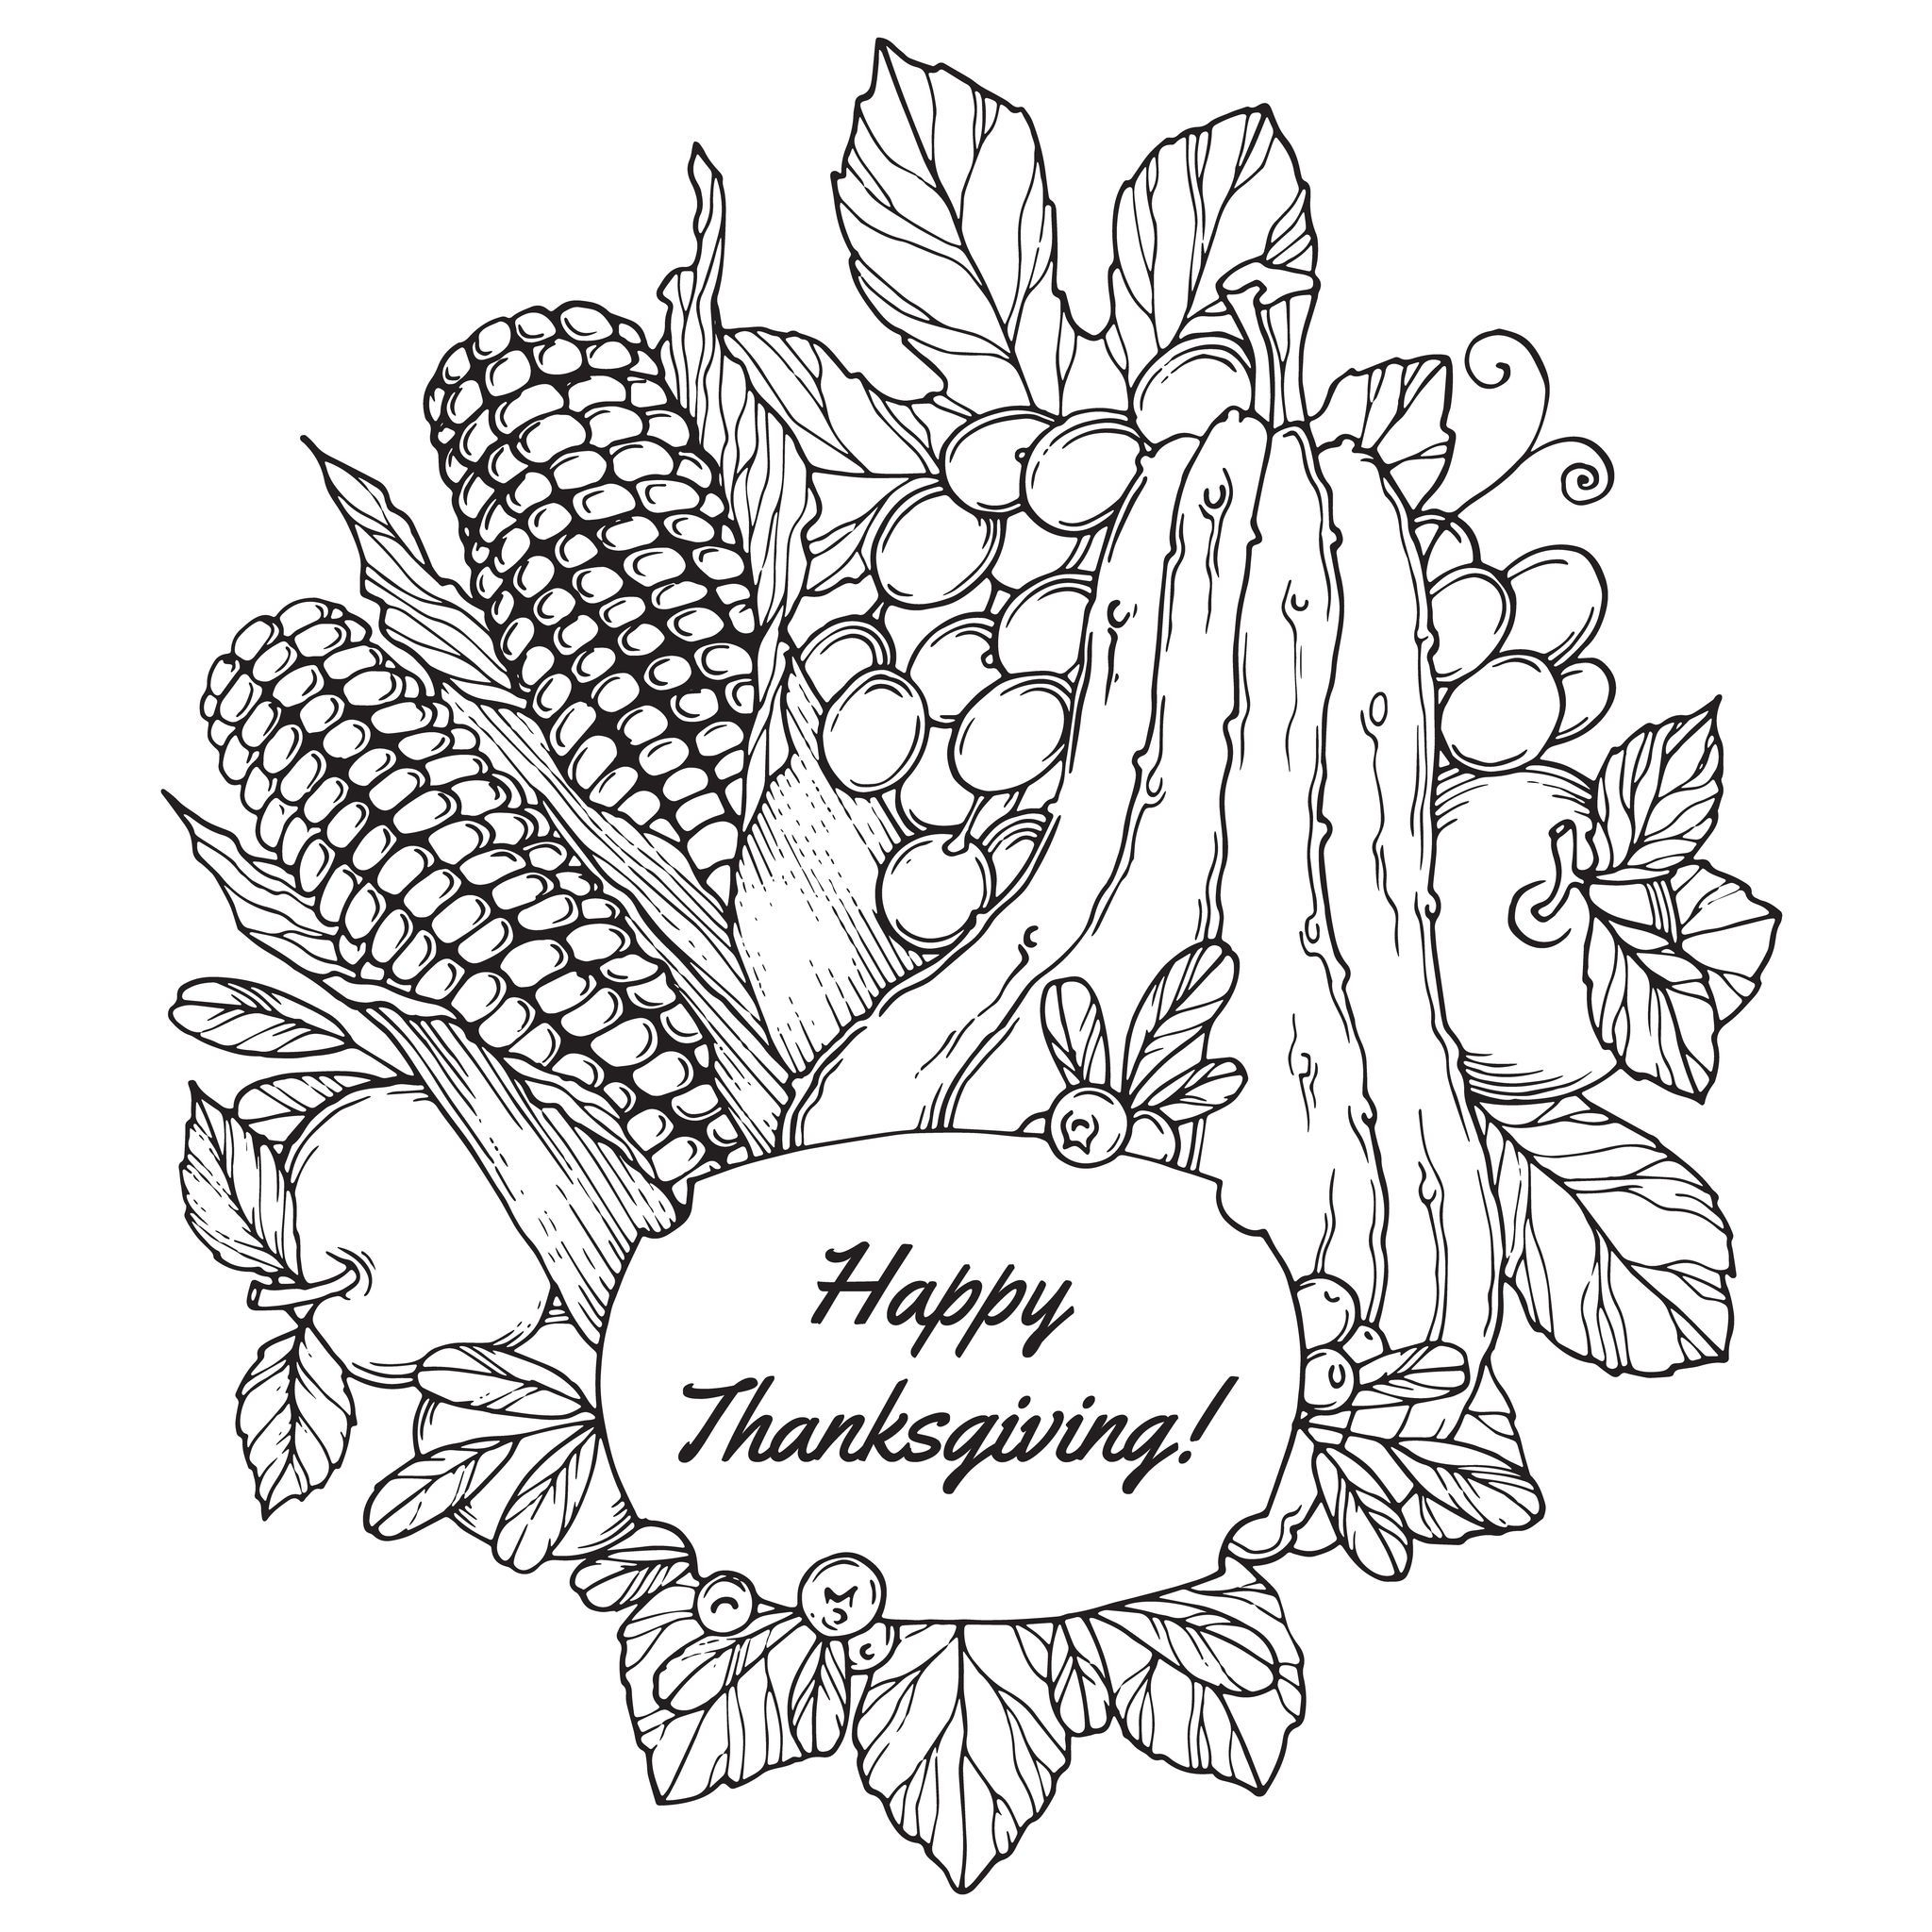 thanksgiving coloring pages for adults - thanksgiving coloring pages for adults